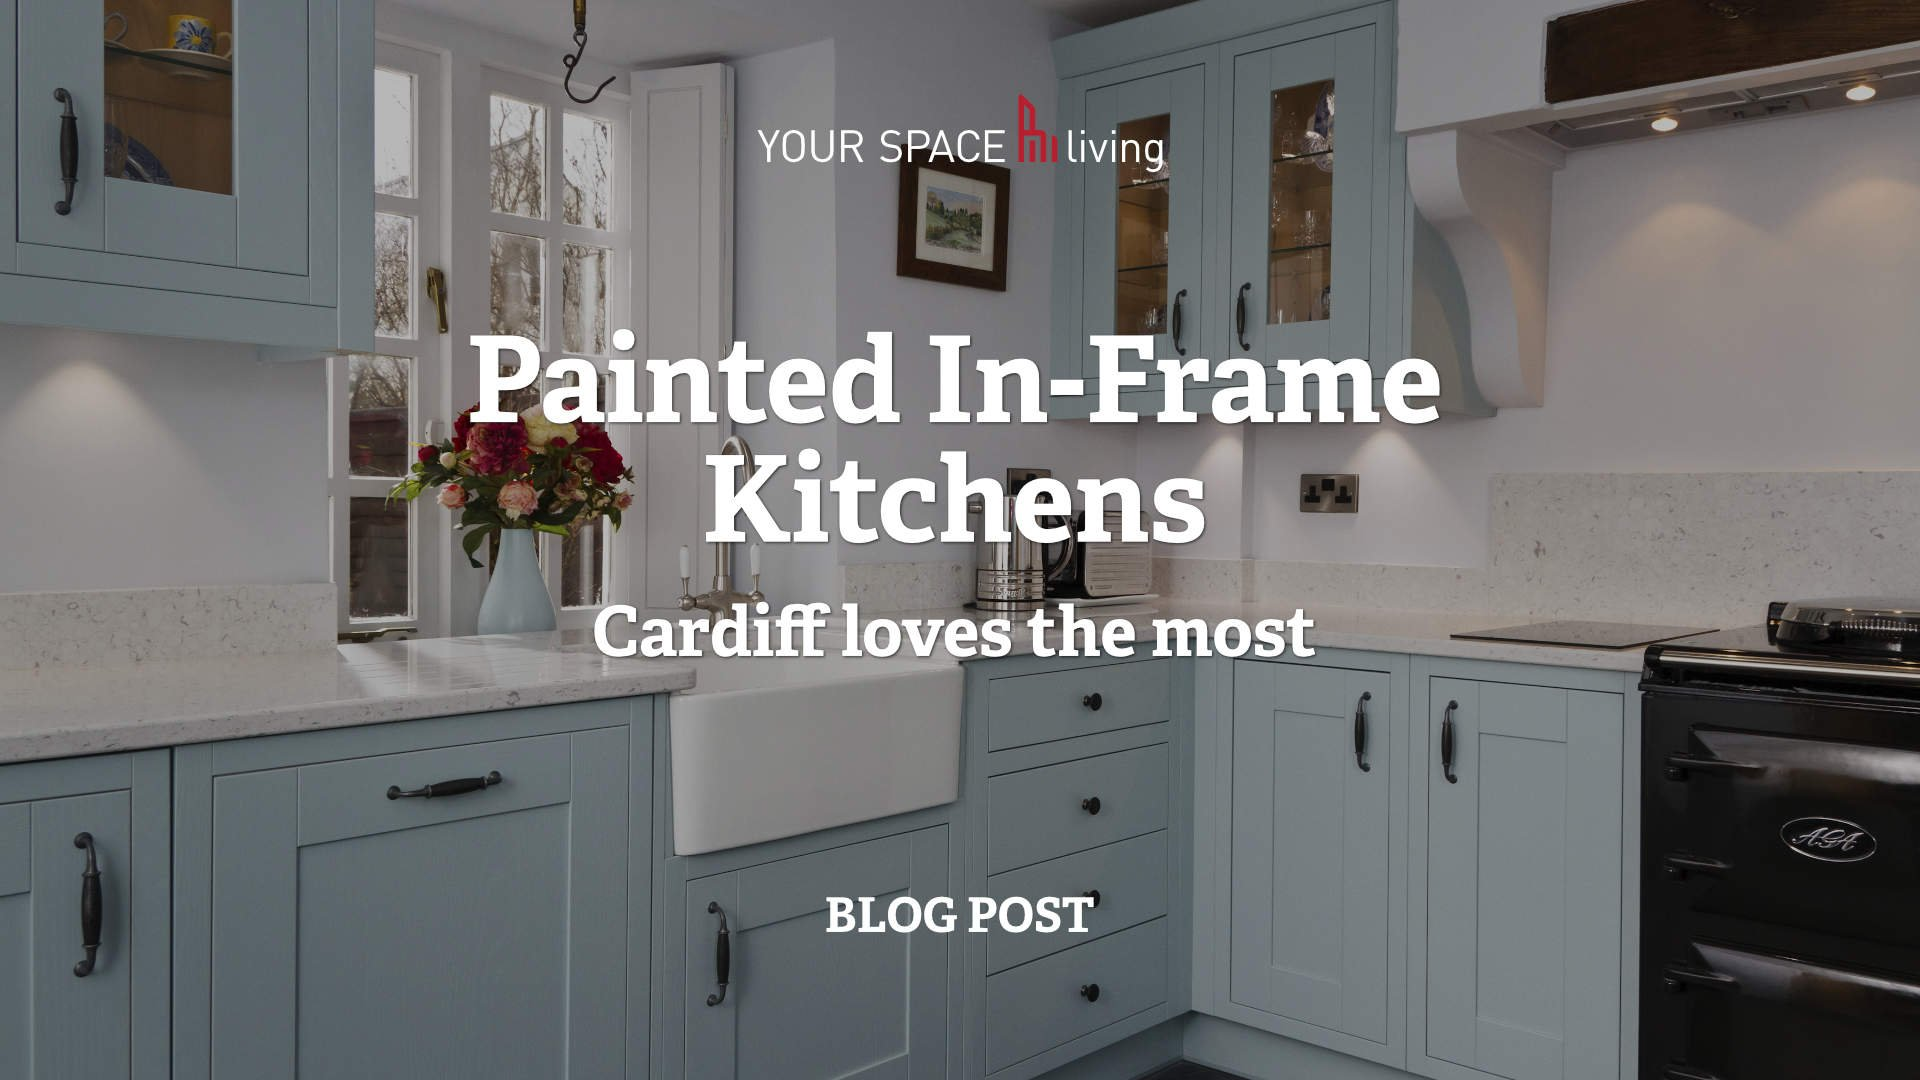 Painted in frame kitchens